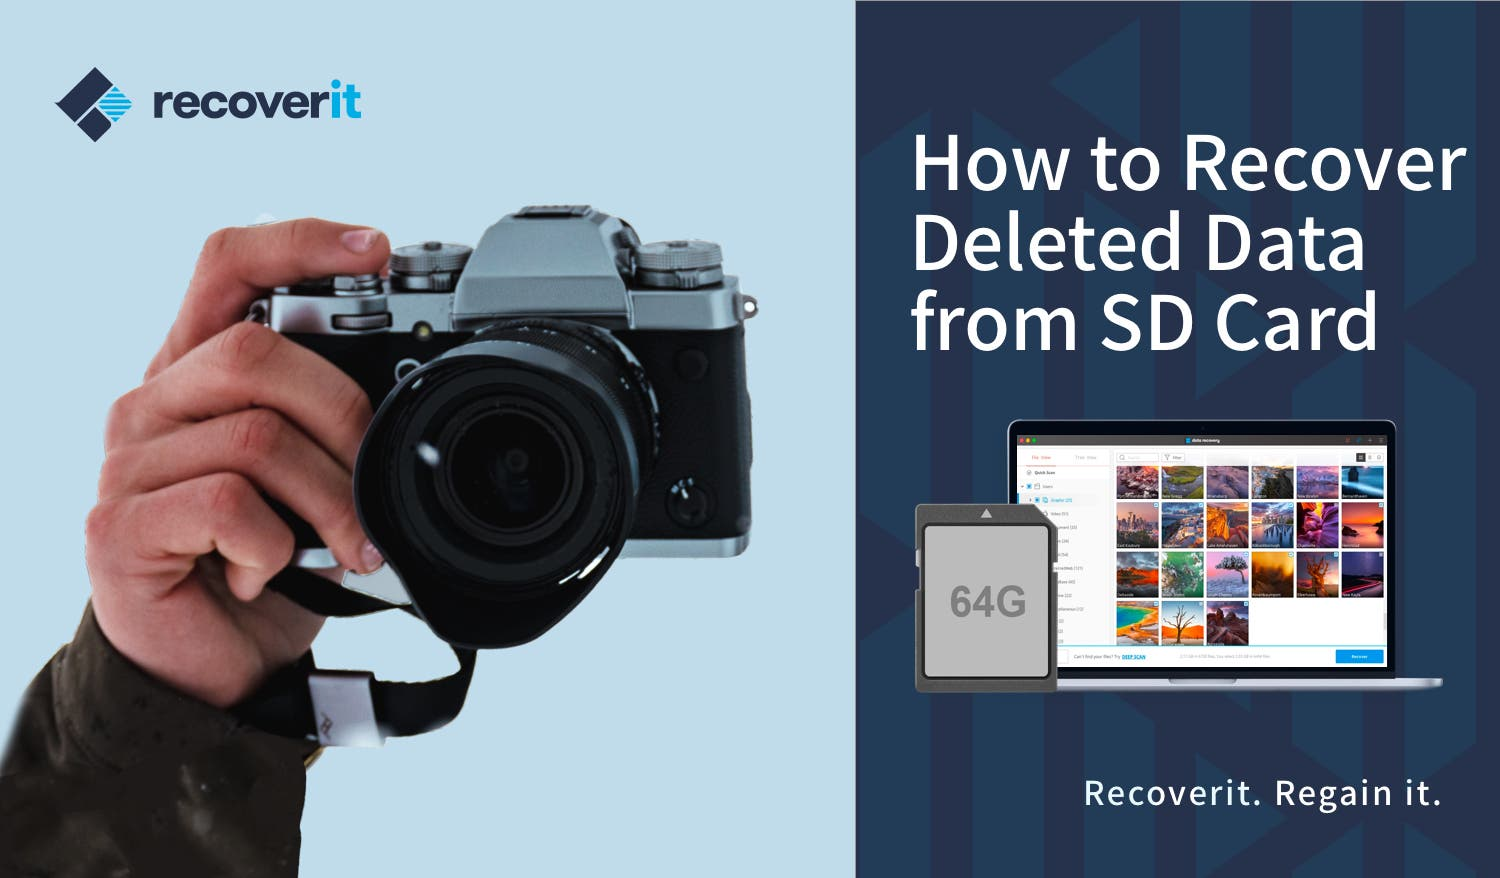 Using Wondershare Recoverit 8.0 for SD Card Data Recovery